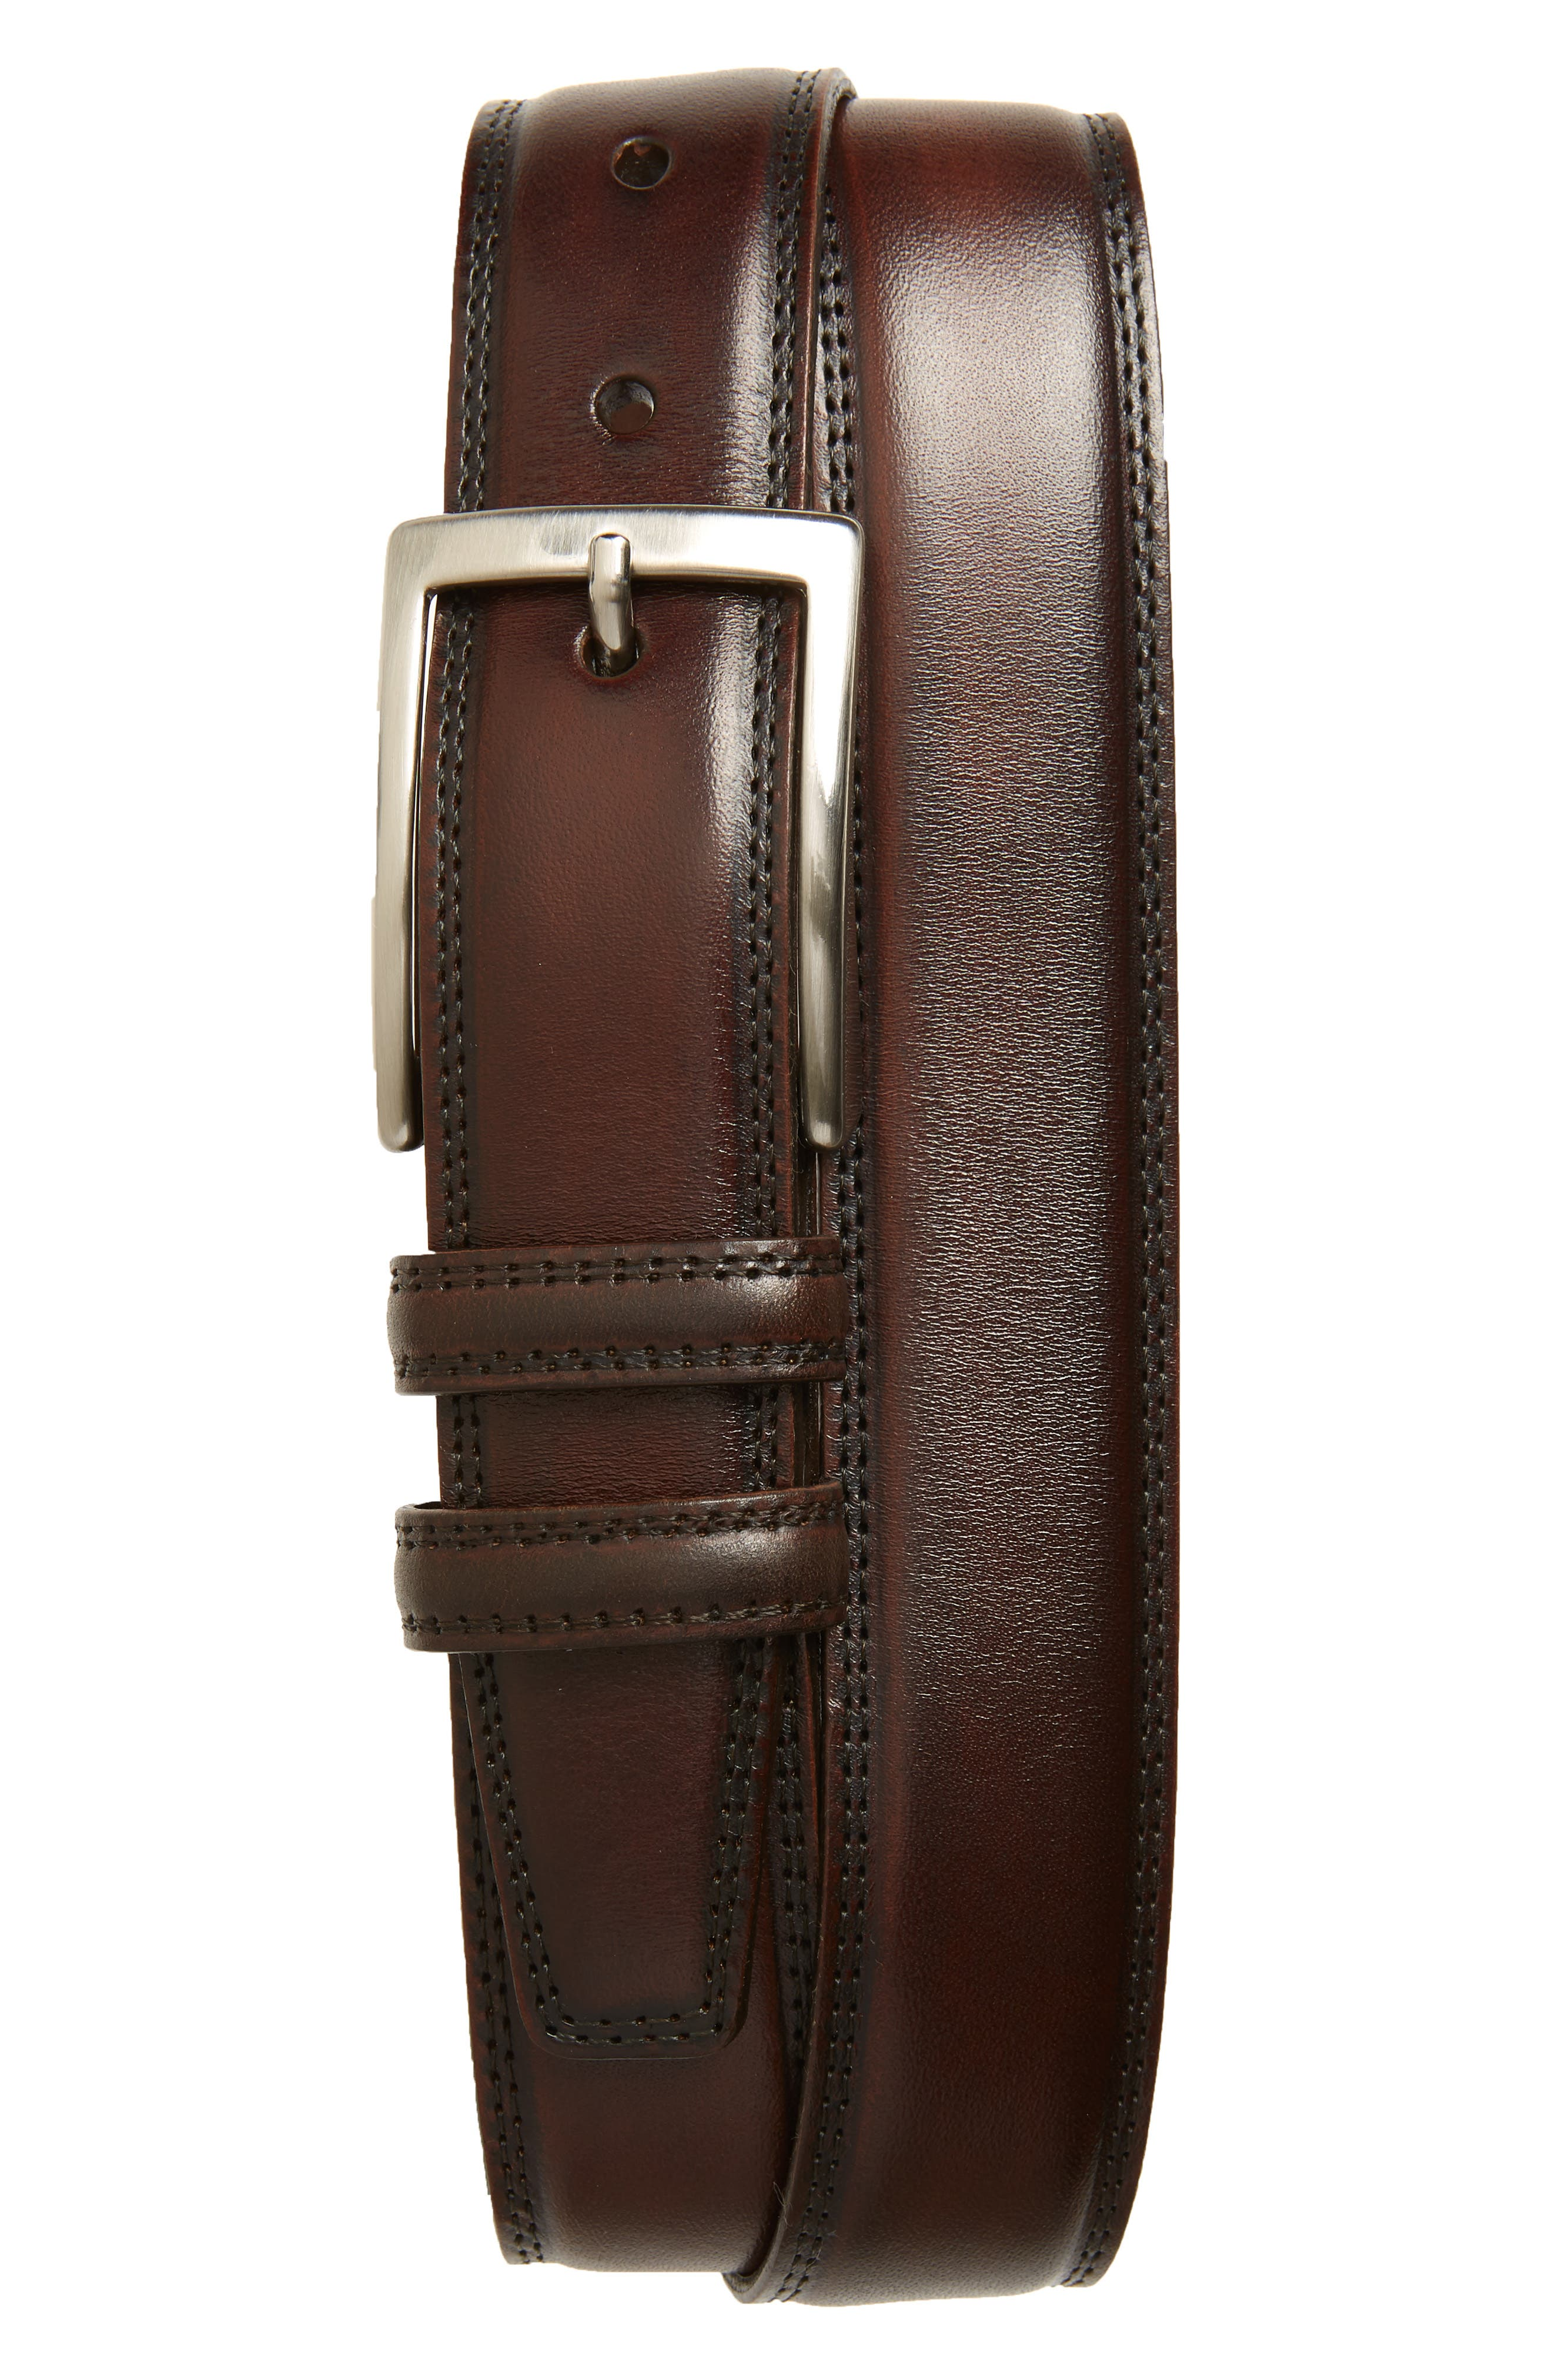 Two-tone kipskin leather elevates an American-made belt with exceptional charm. Style Name: Torino Kipskin Leather Belt. Style Number: 5758265. Available in stores.